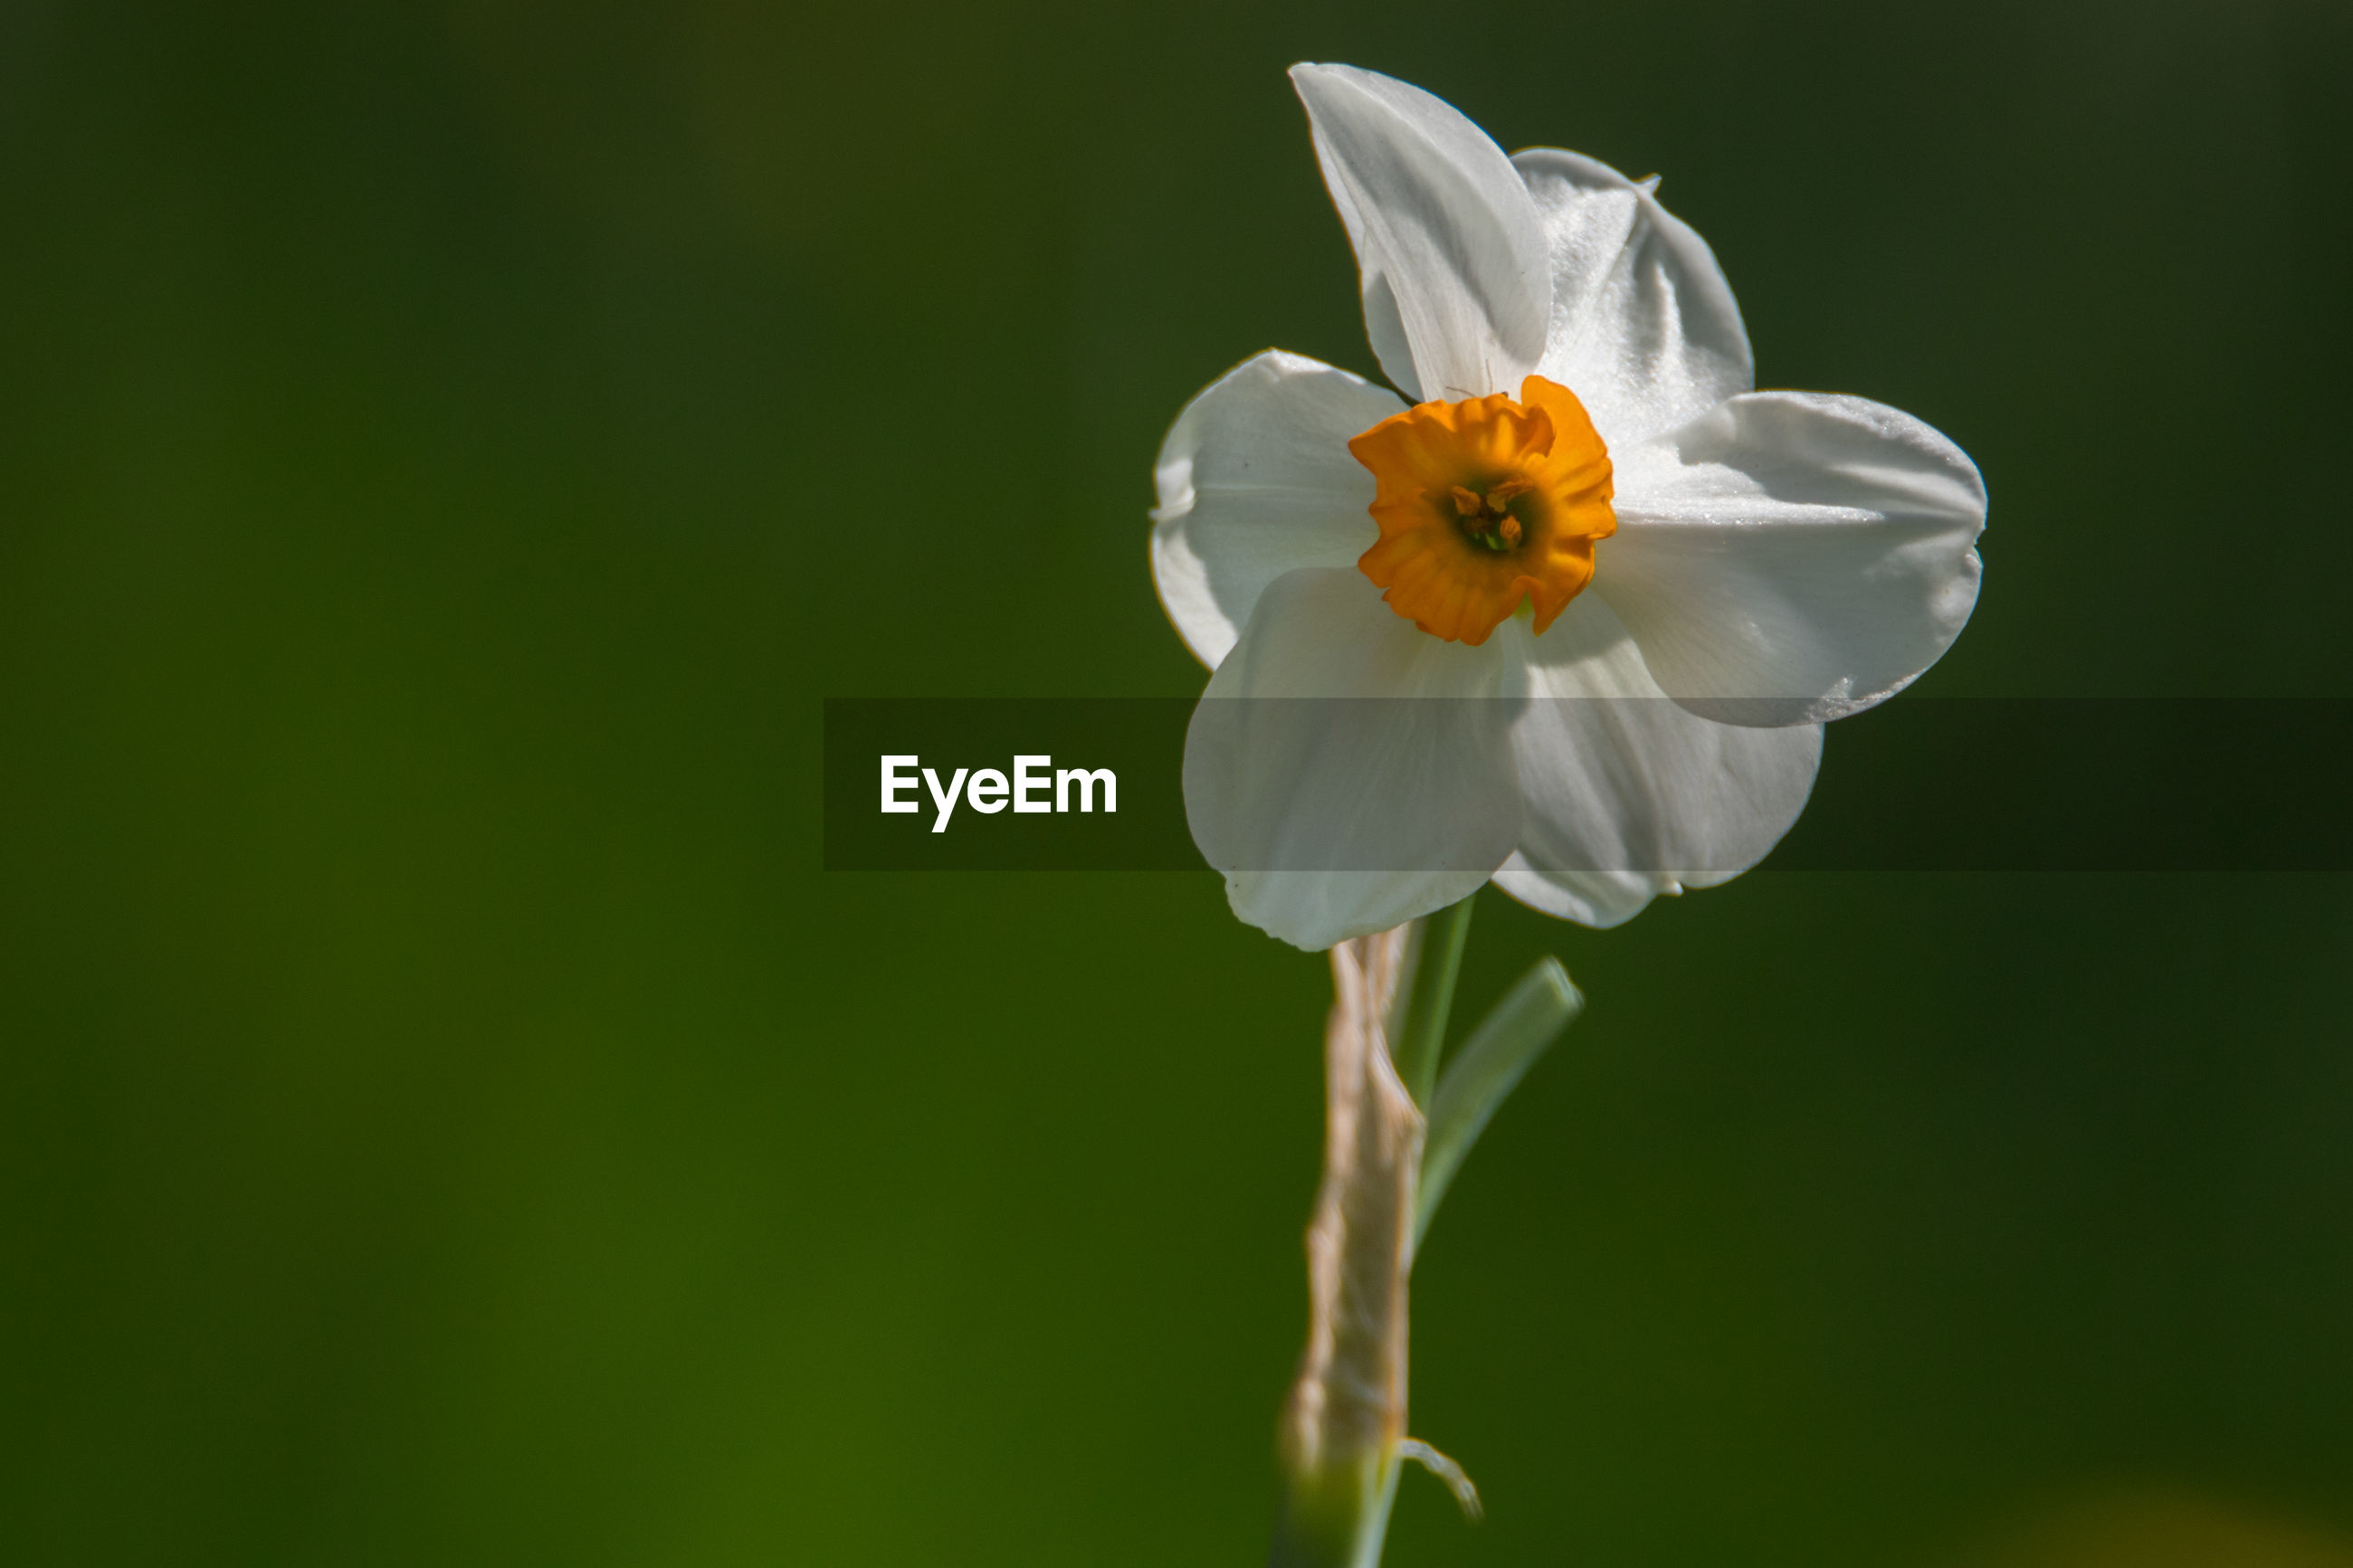 CLOSE-UP OF WHITE FLOWER AGAINST BLURRED BACKGROUND